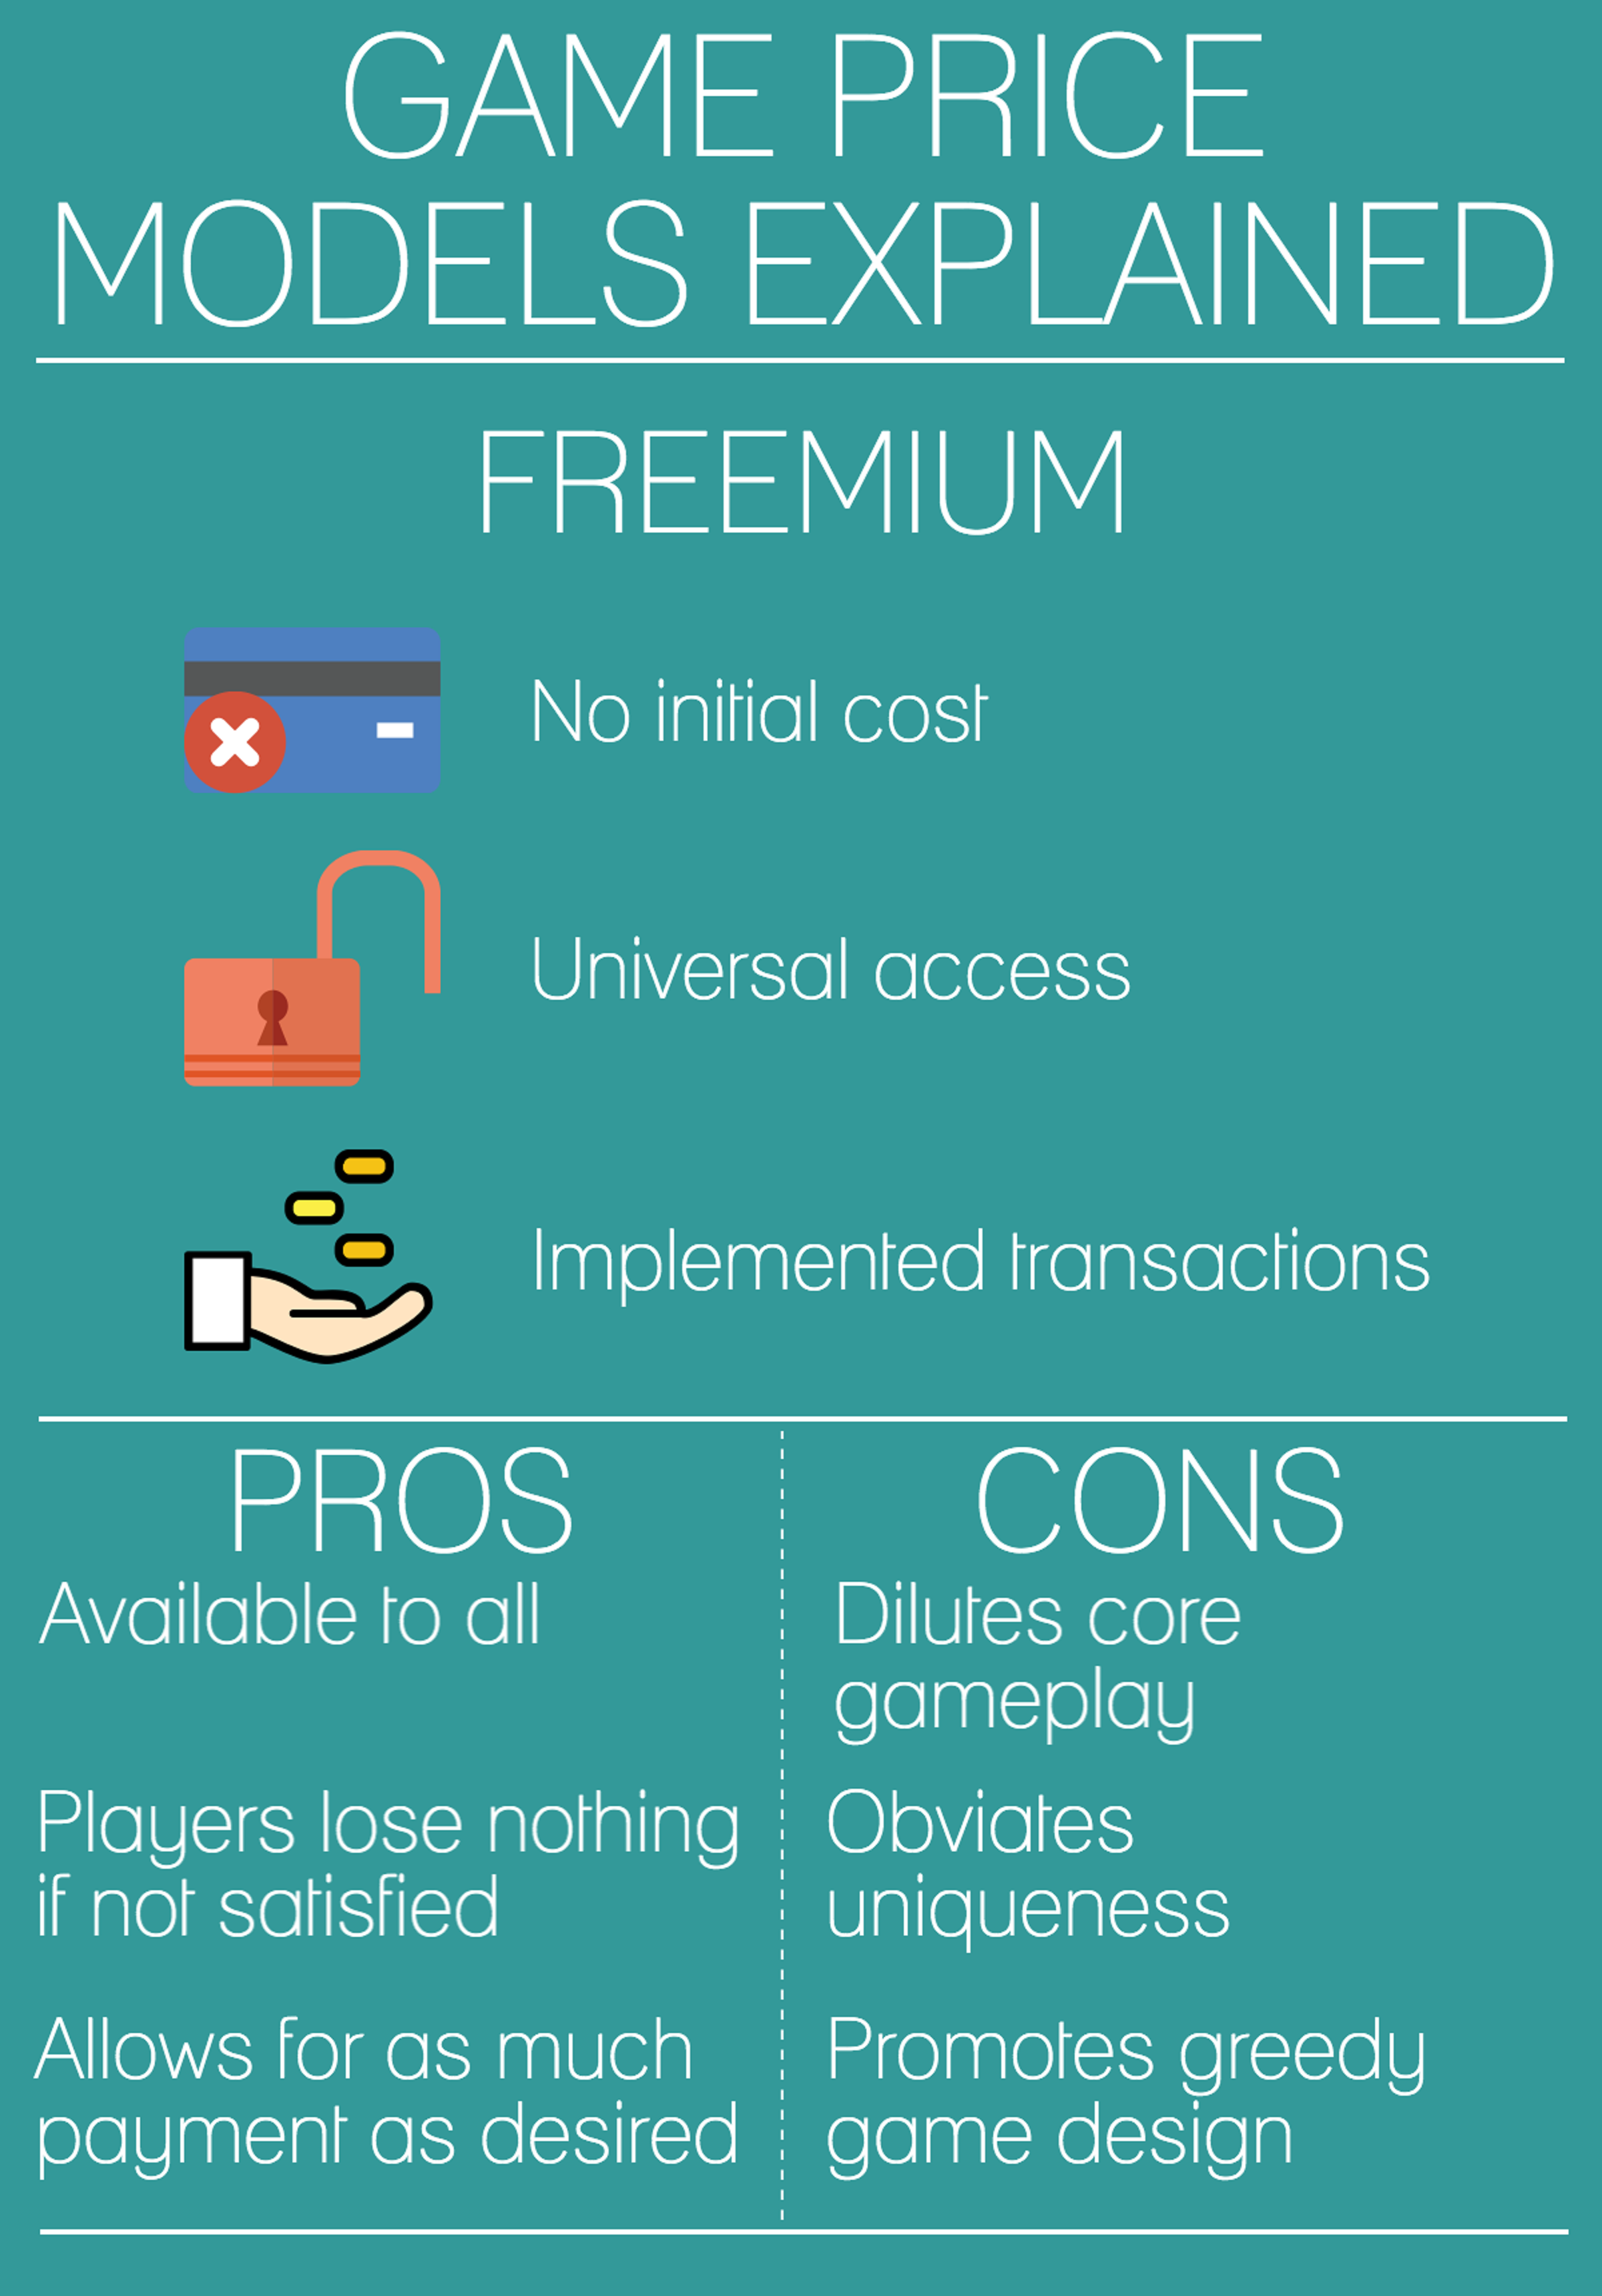 The freemium model allows players to obtain advantages by using real money to buy forms of internal currency to get more moves in Candy Crush, fill the stamina bar in Madden Mobile and speed up build times in Clash of Clans, to name a few examples.